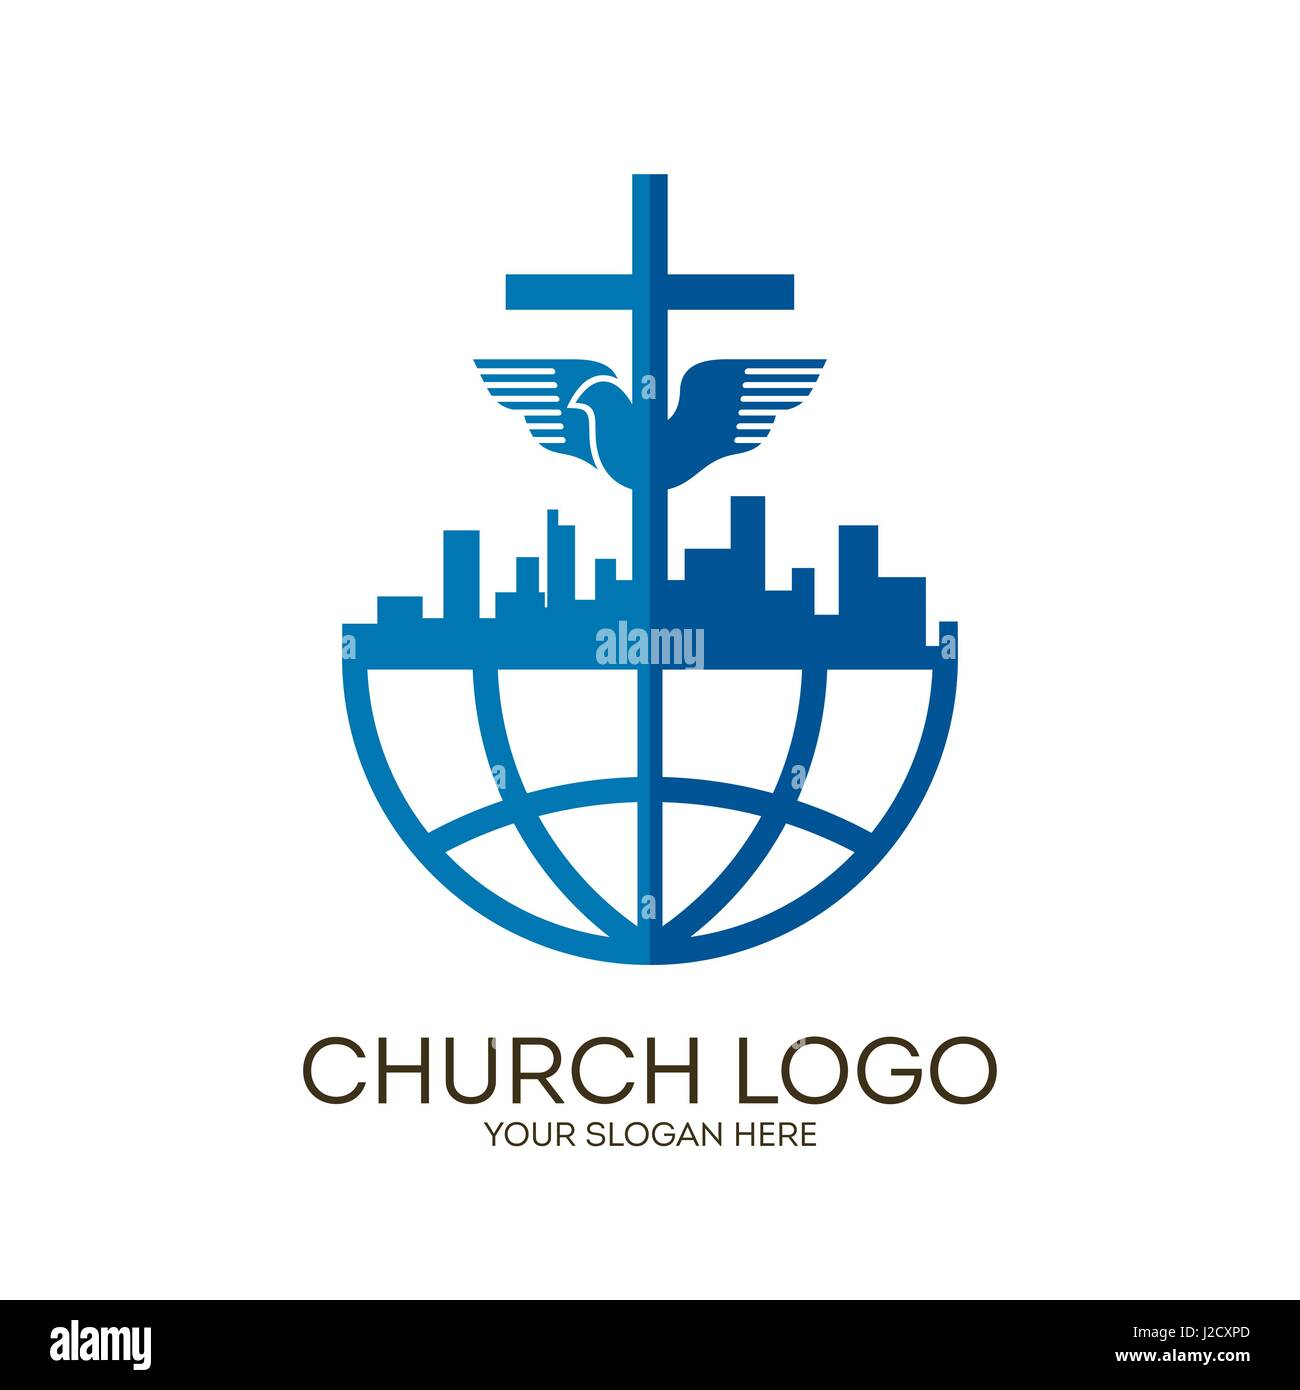 Church logo christian symbols jesus cross and dove the holy church logo christian symbols jesus cross and dove the holy spirit altavistaventures Images